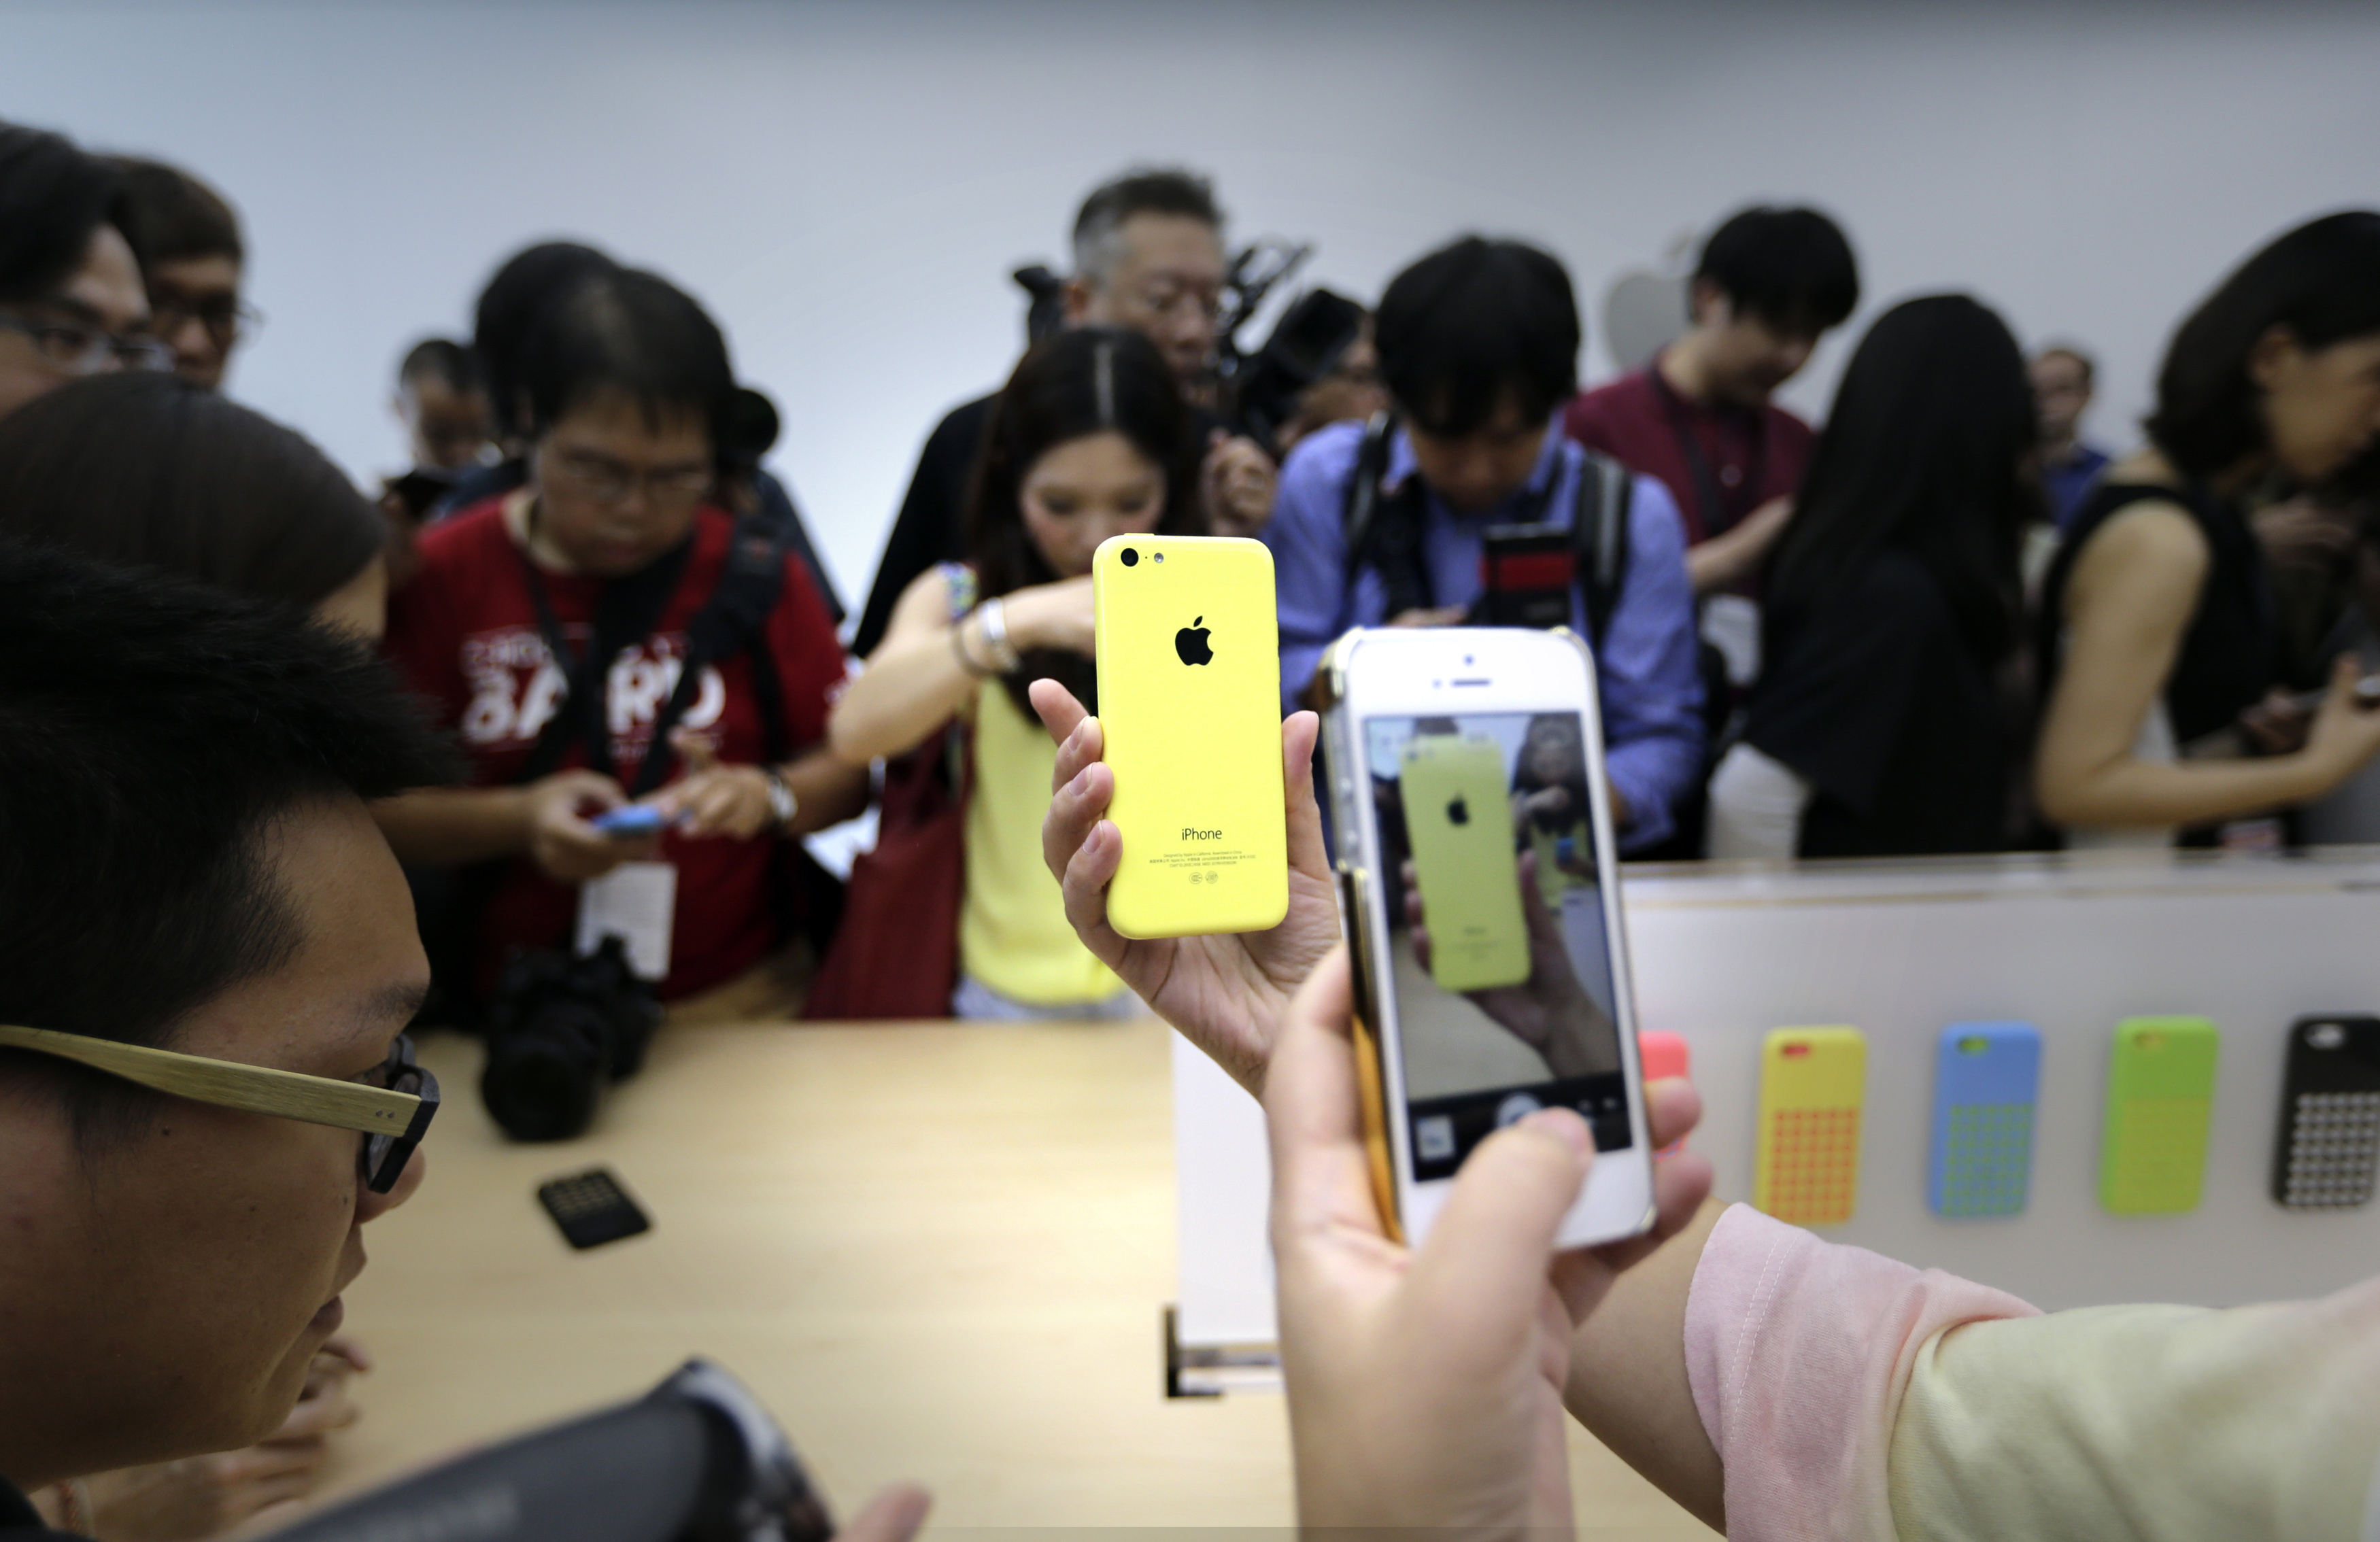 apple strategy to enter china Yet what i love about apple's strategy is that it is never around what the competition is doing apple marches to beat of their own drum this is fundamentally mis-understood by so many.